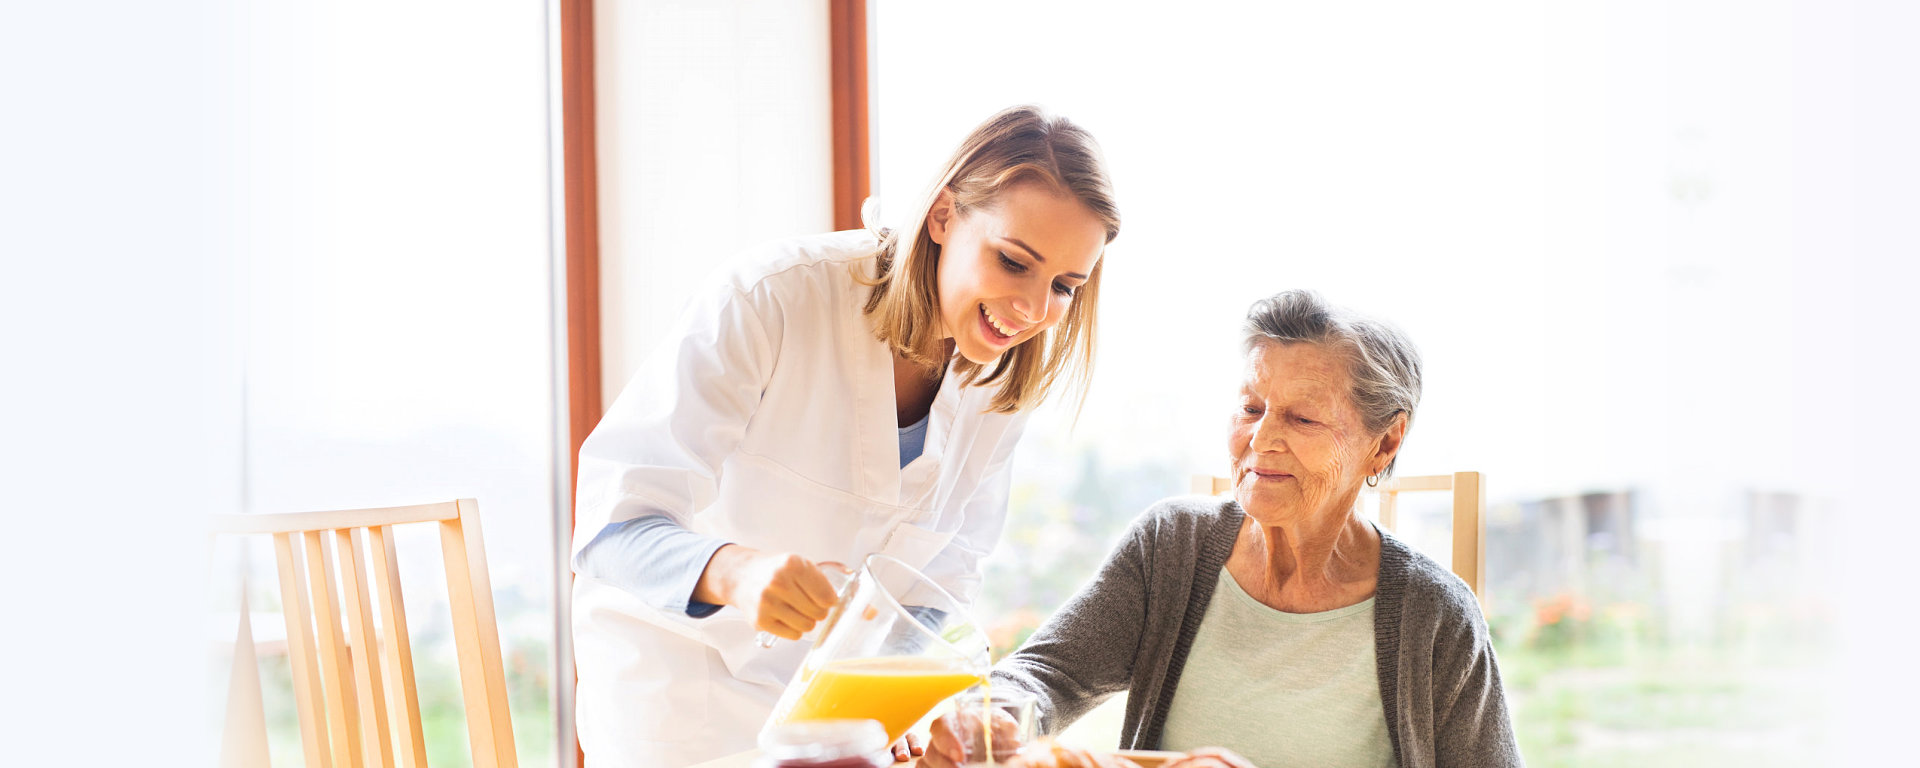 caregiver serving juice to an elderly woman